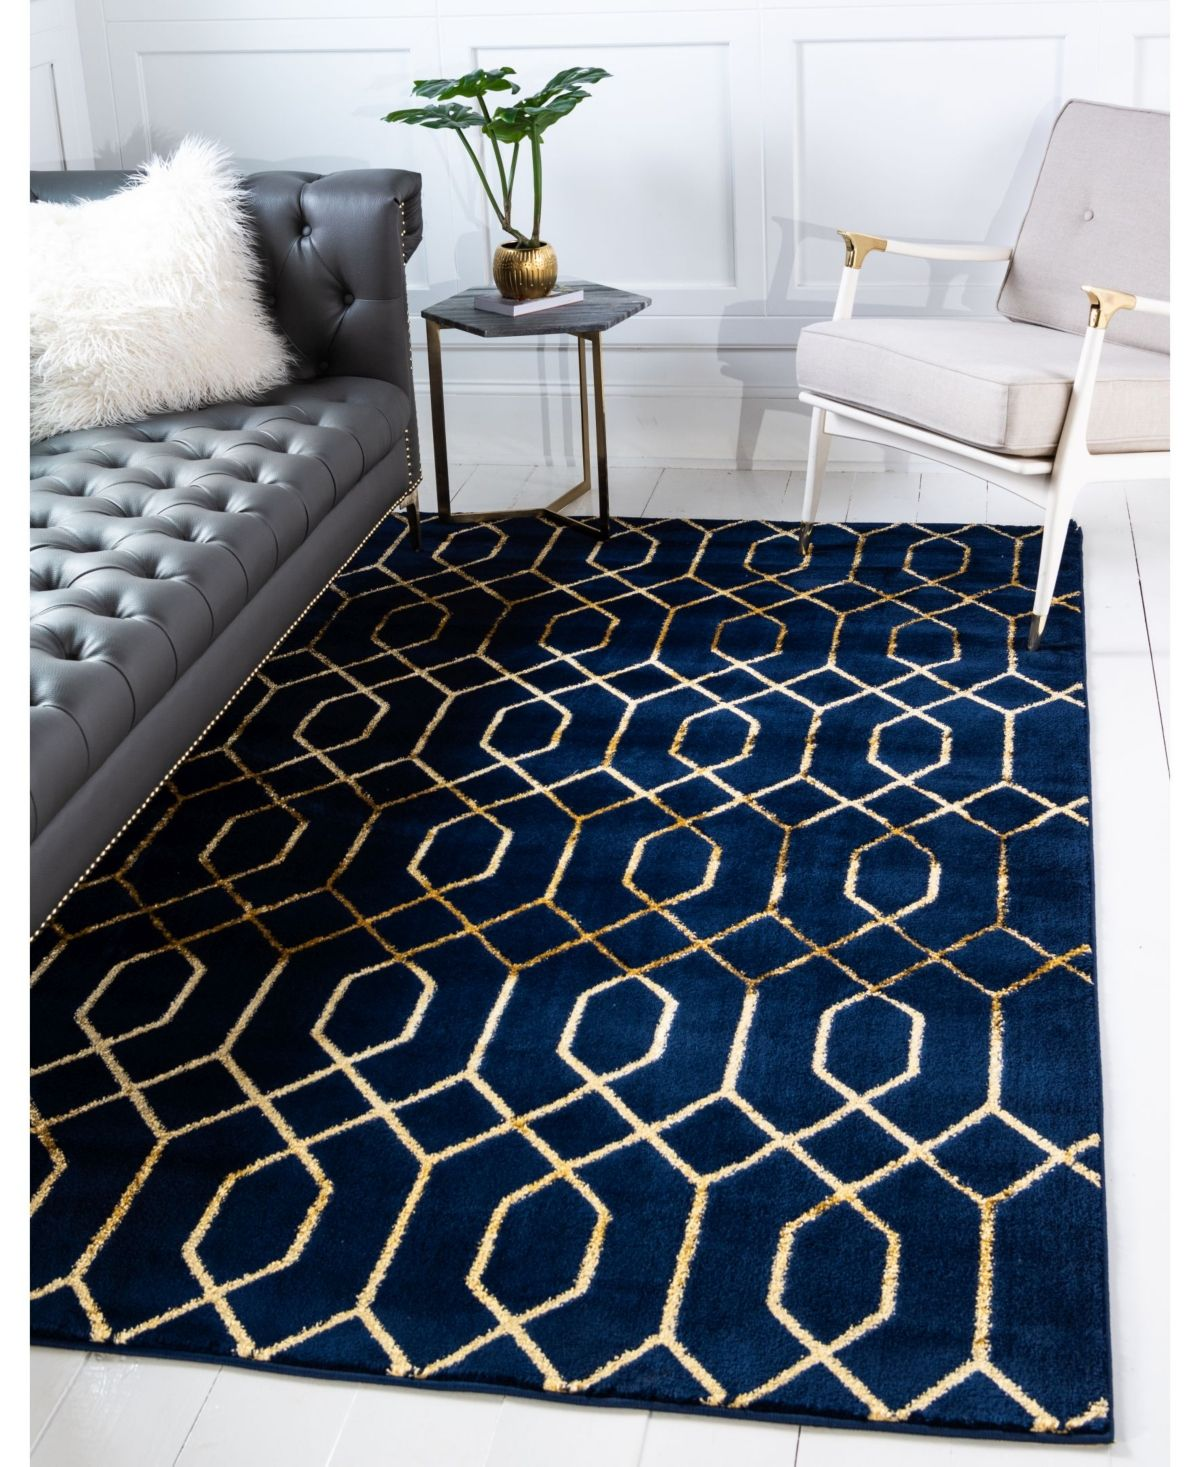 Marilyn Monroe Glam Mmg001 Navy Blue Gold 9 X 12 Area Rug Reviews Furniture Macy S In 2020 Blue And Gold Bedroom Gold Living Room Blue And Gold Living Room